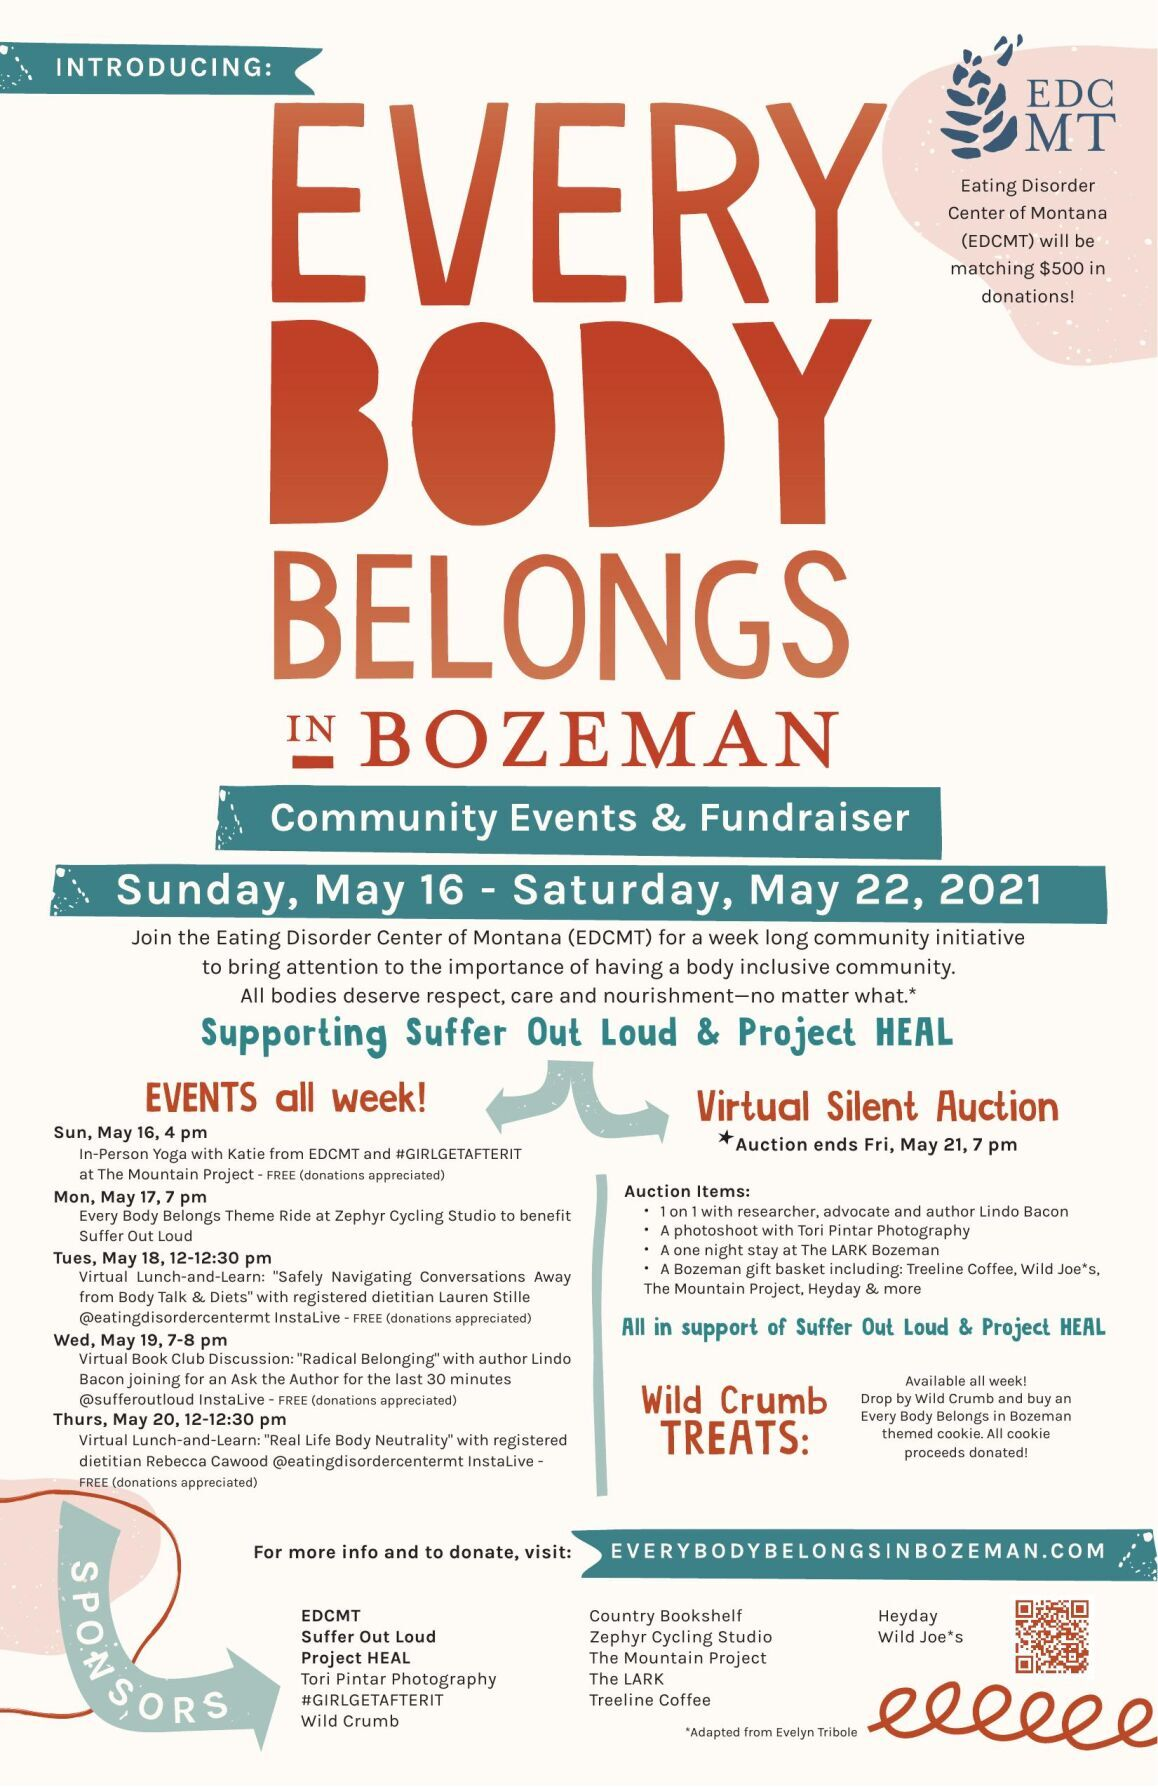 Local eating disorder center partners with Bozeman businesses